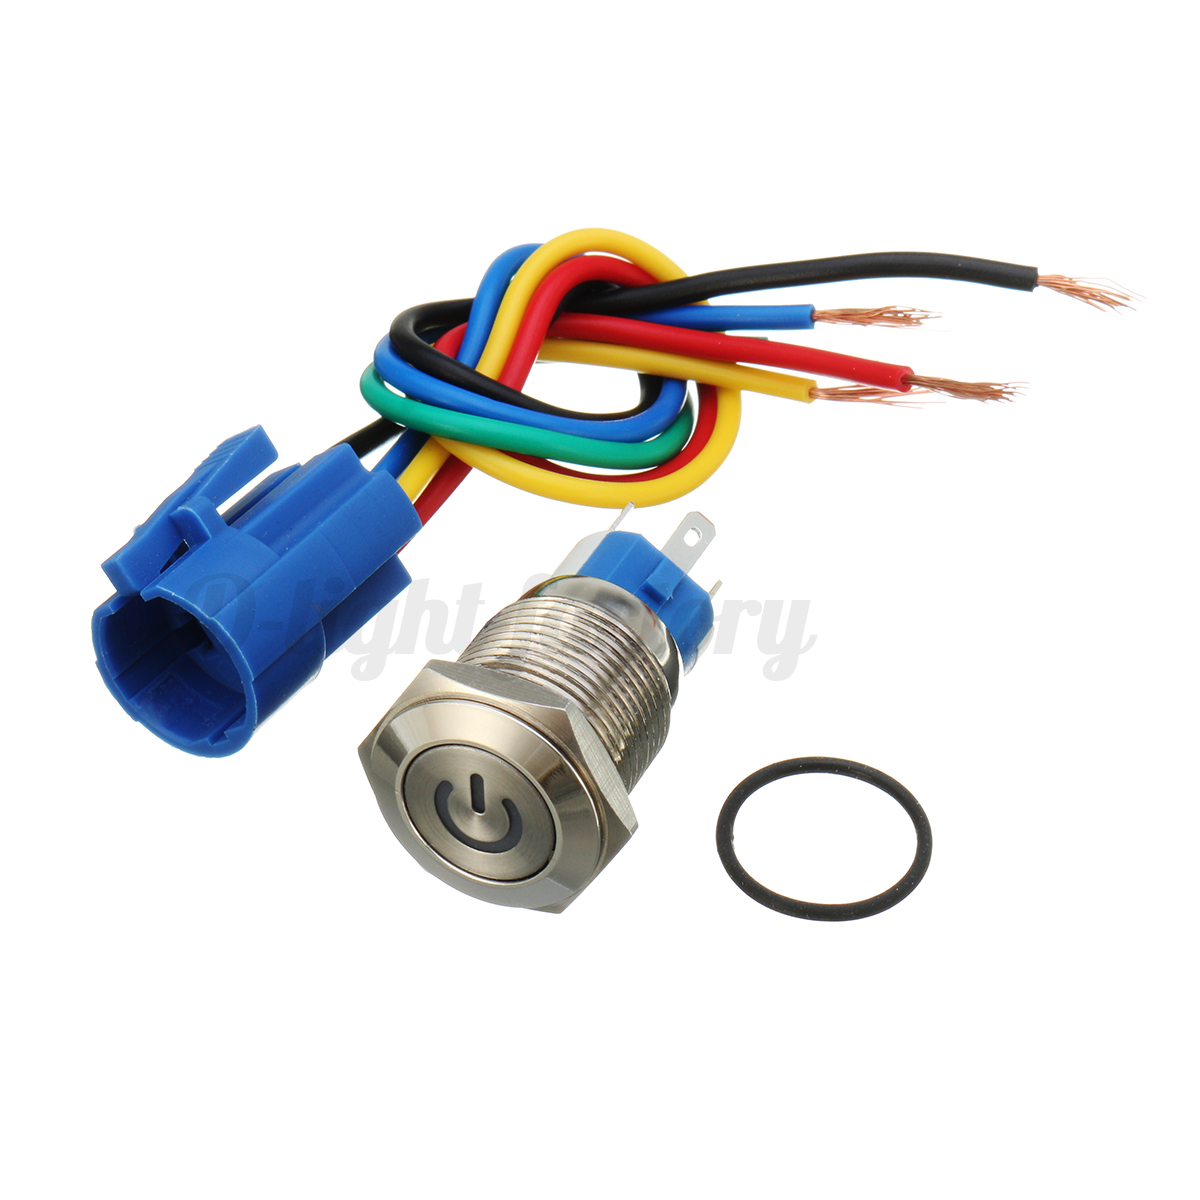 16mm 12v Car Metal Power Push Button Switch Led Latching Socket Electrical Wiring